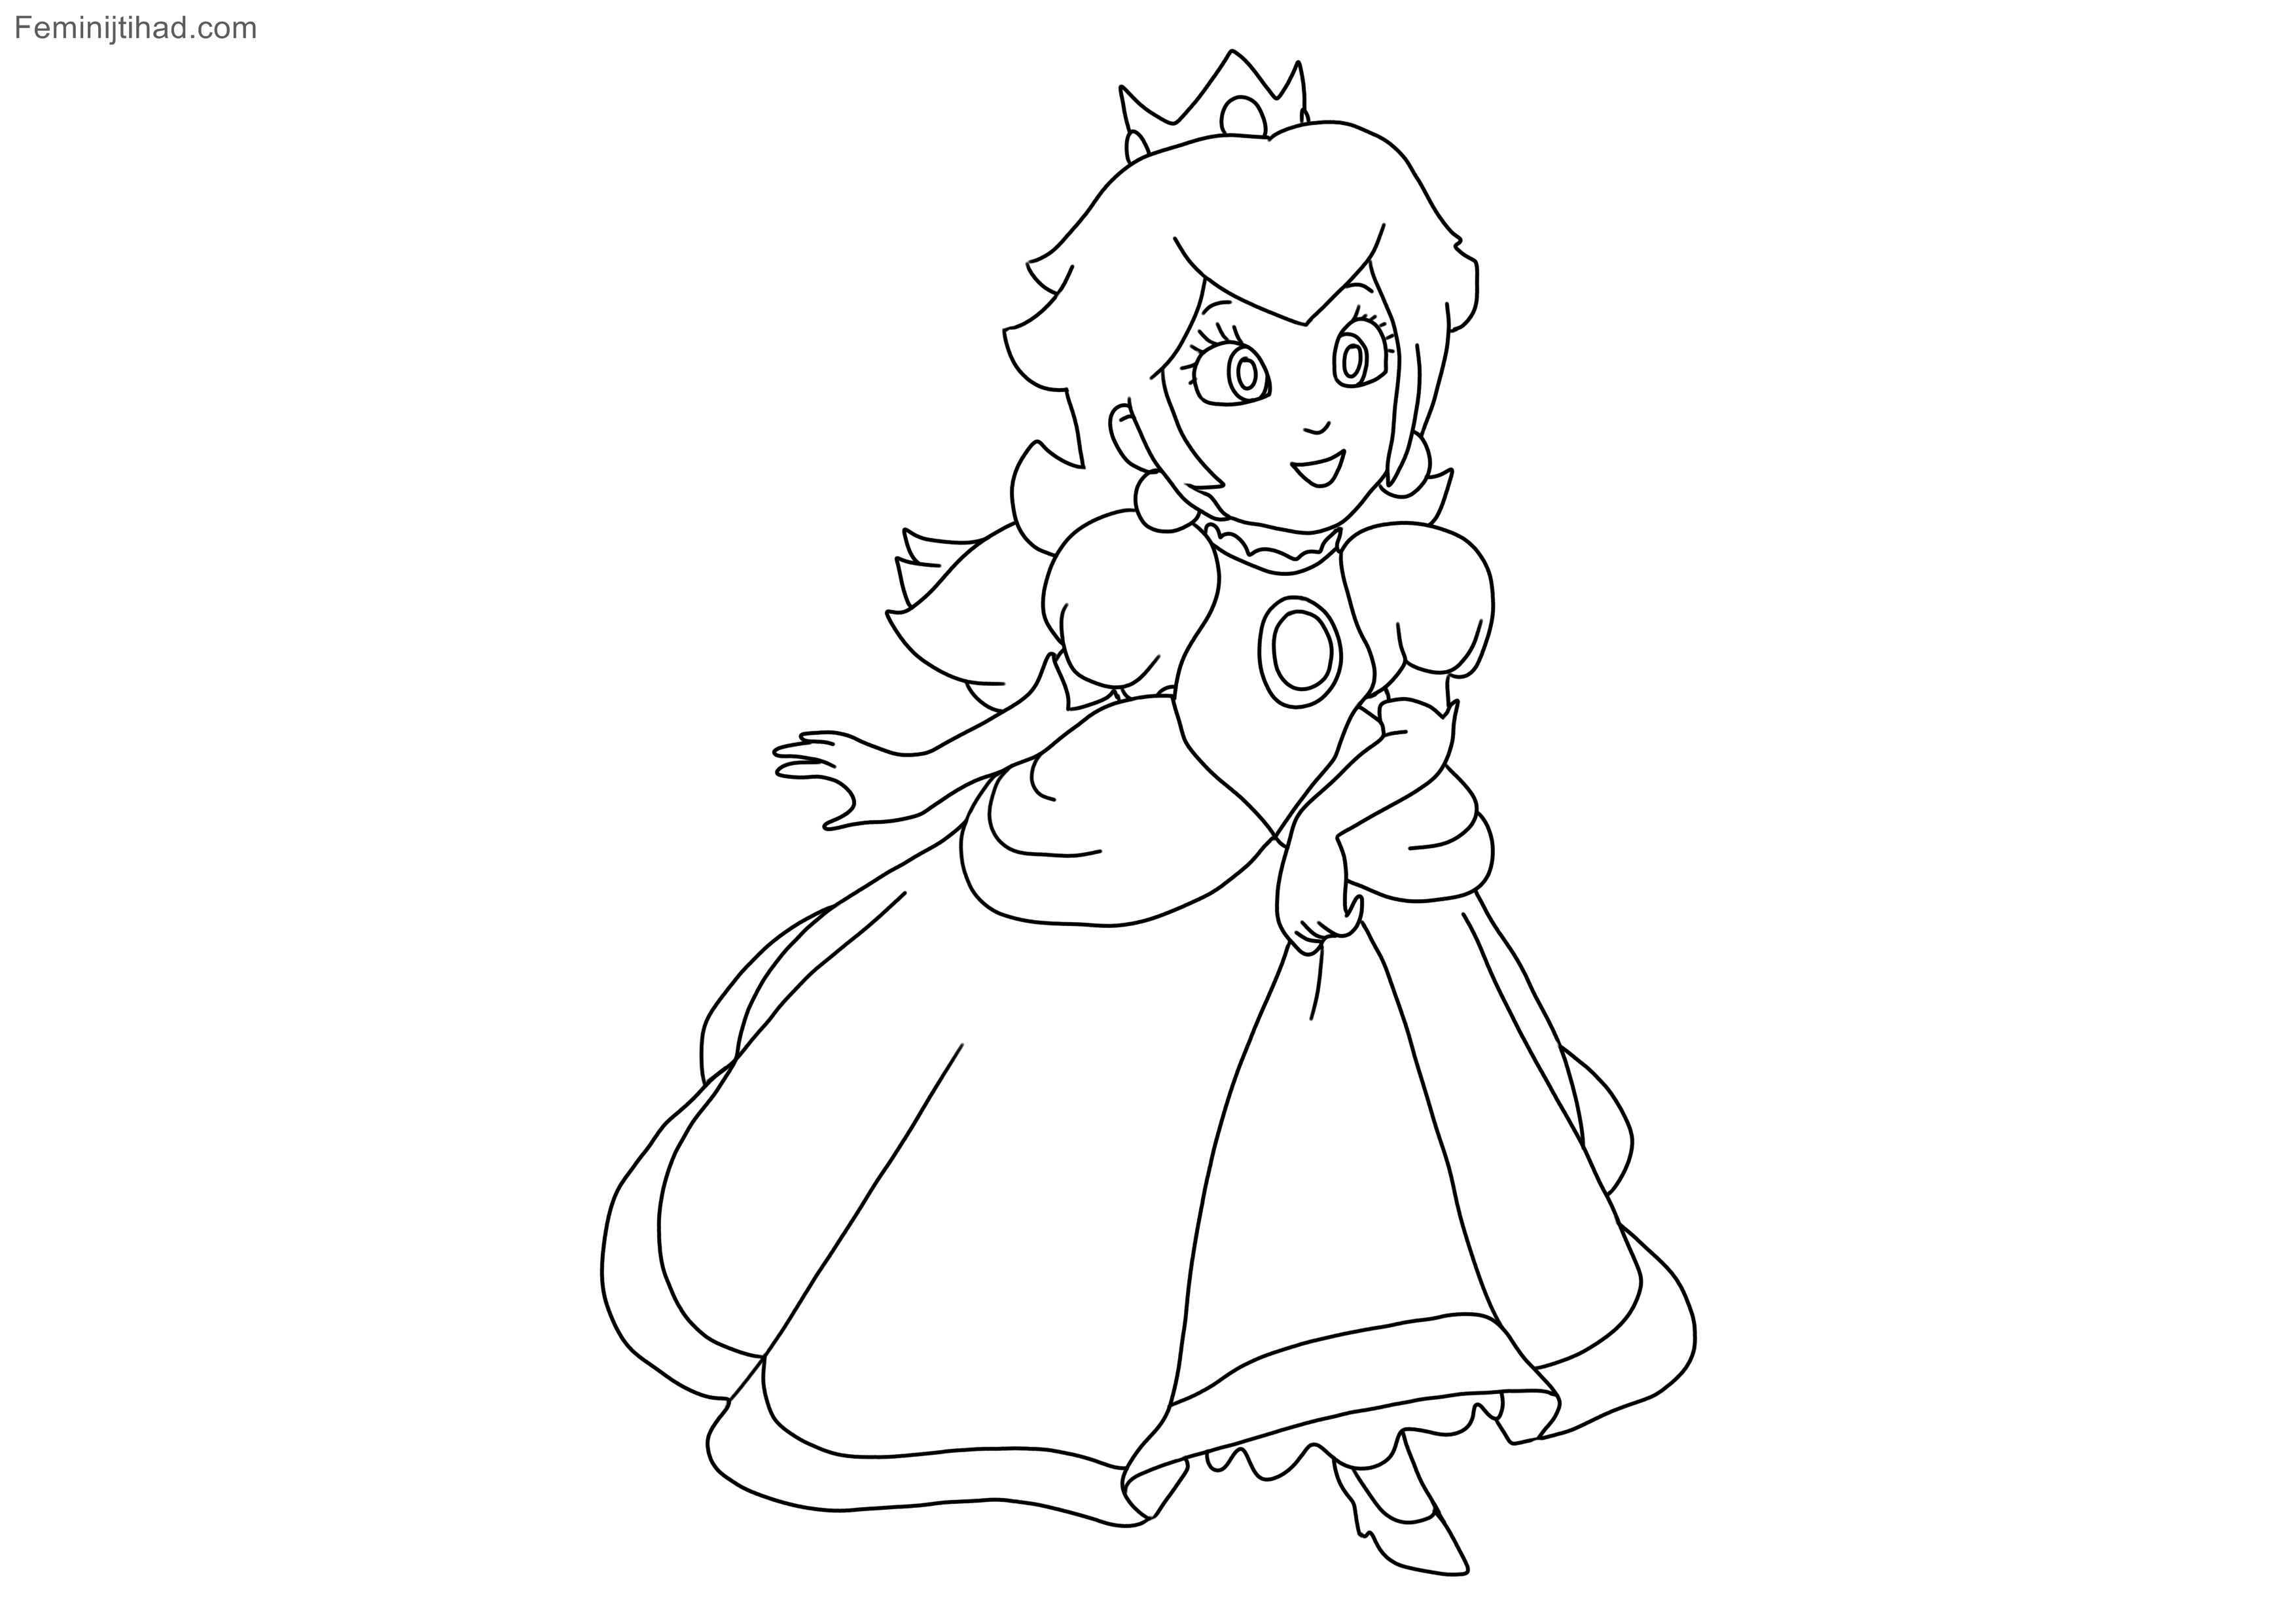 Princess Peach Coloring Pages Collection Coloring Coloringbook Kids Coloringpages Coloring Pages Coloring Pictures Free Coloring Sheets